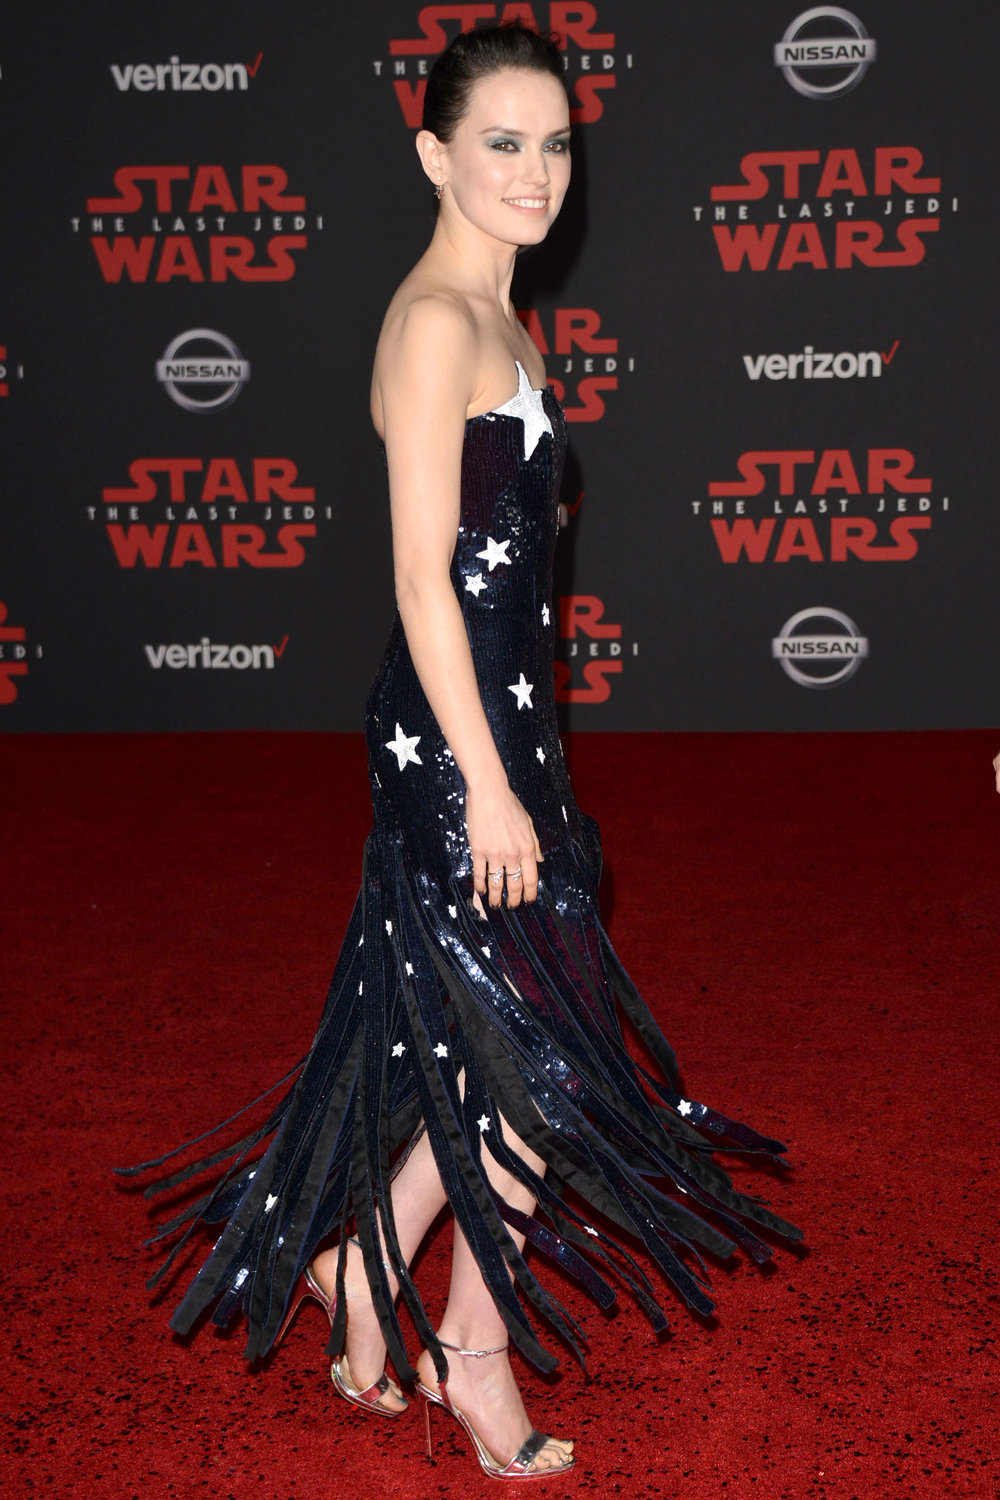 Daisey Ridley - Starring in the role of Rey, Daisey came to the Star Wars Premiere covered in Stars. Did we mention Stars? The fringe bottom is quite mesmerizing.